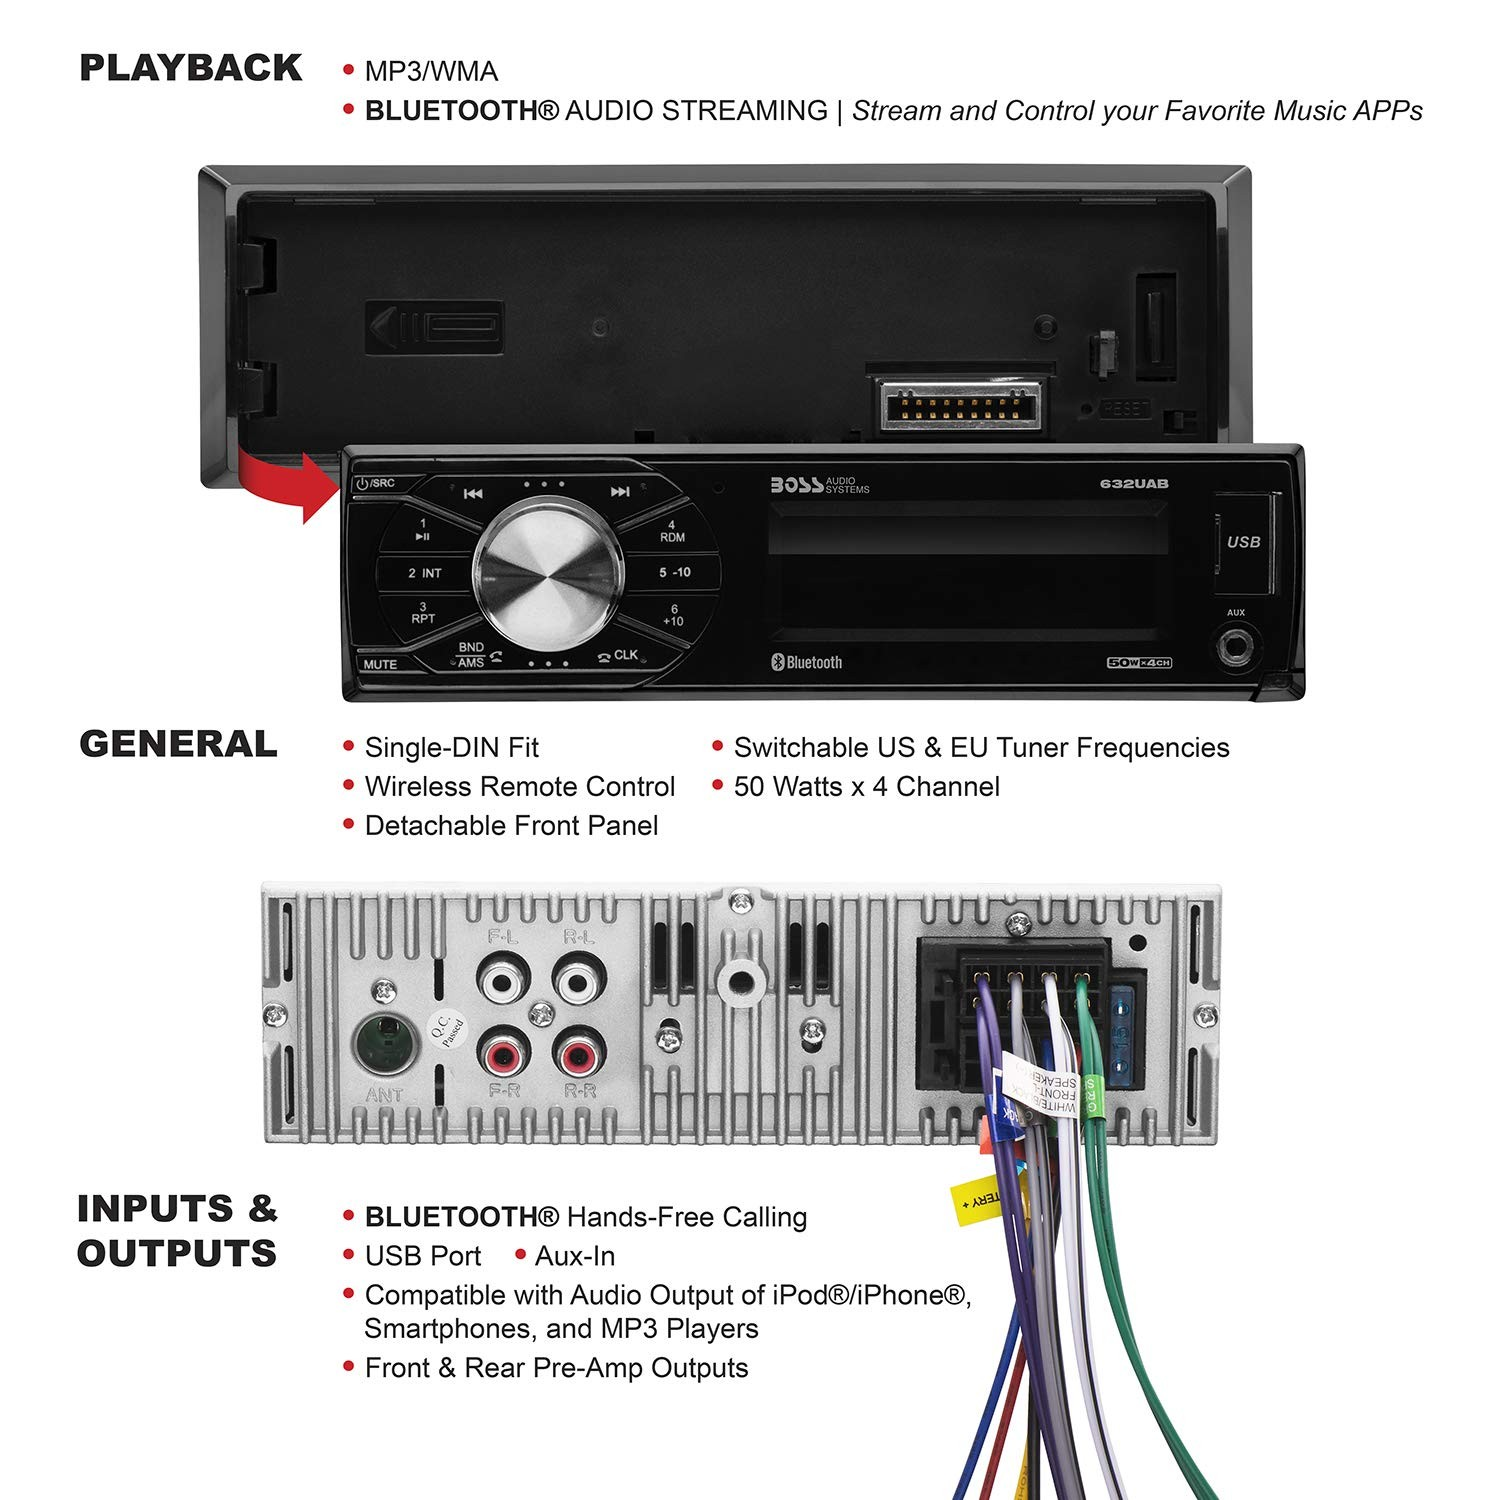 Pyle Plmrmp3a Installation Instructions aftermarket Reverse Camera Wiring Diagram Of Pyle Plmrmp3a Installation Instructions